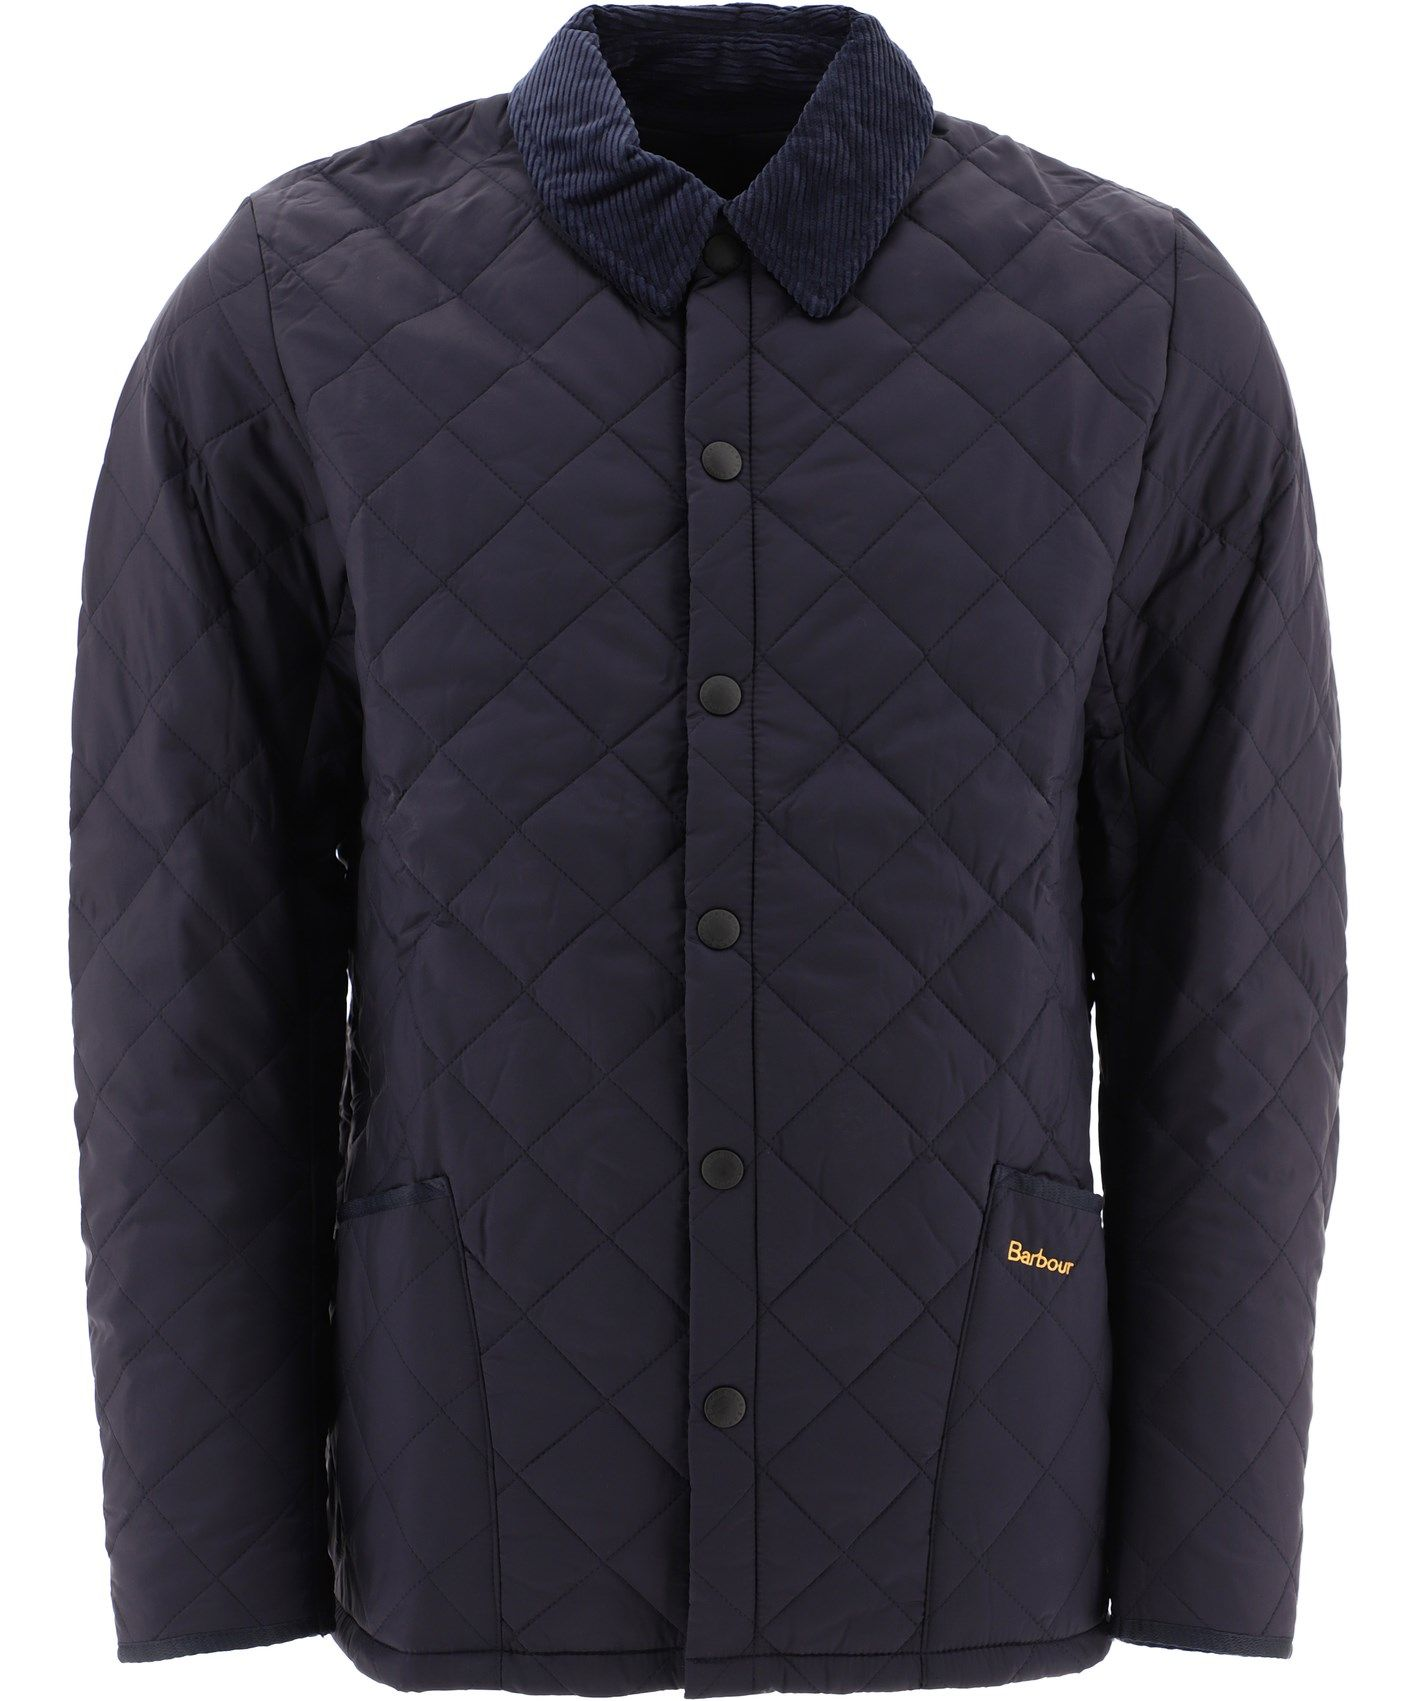 Barbour Jackets BARBOUR MEN'S MQU0240MQUNY92 BLUE OTHER MATERIALS OUTERWEAR JACKET